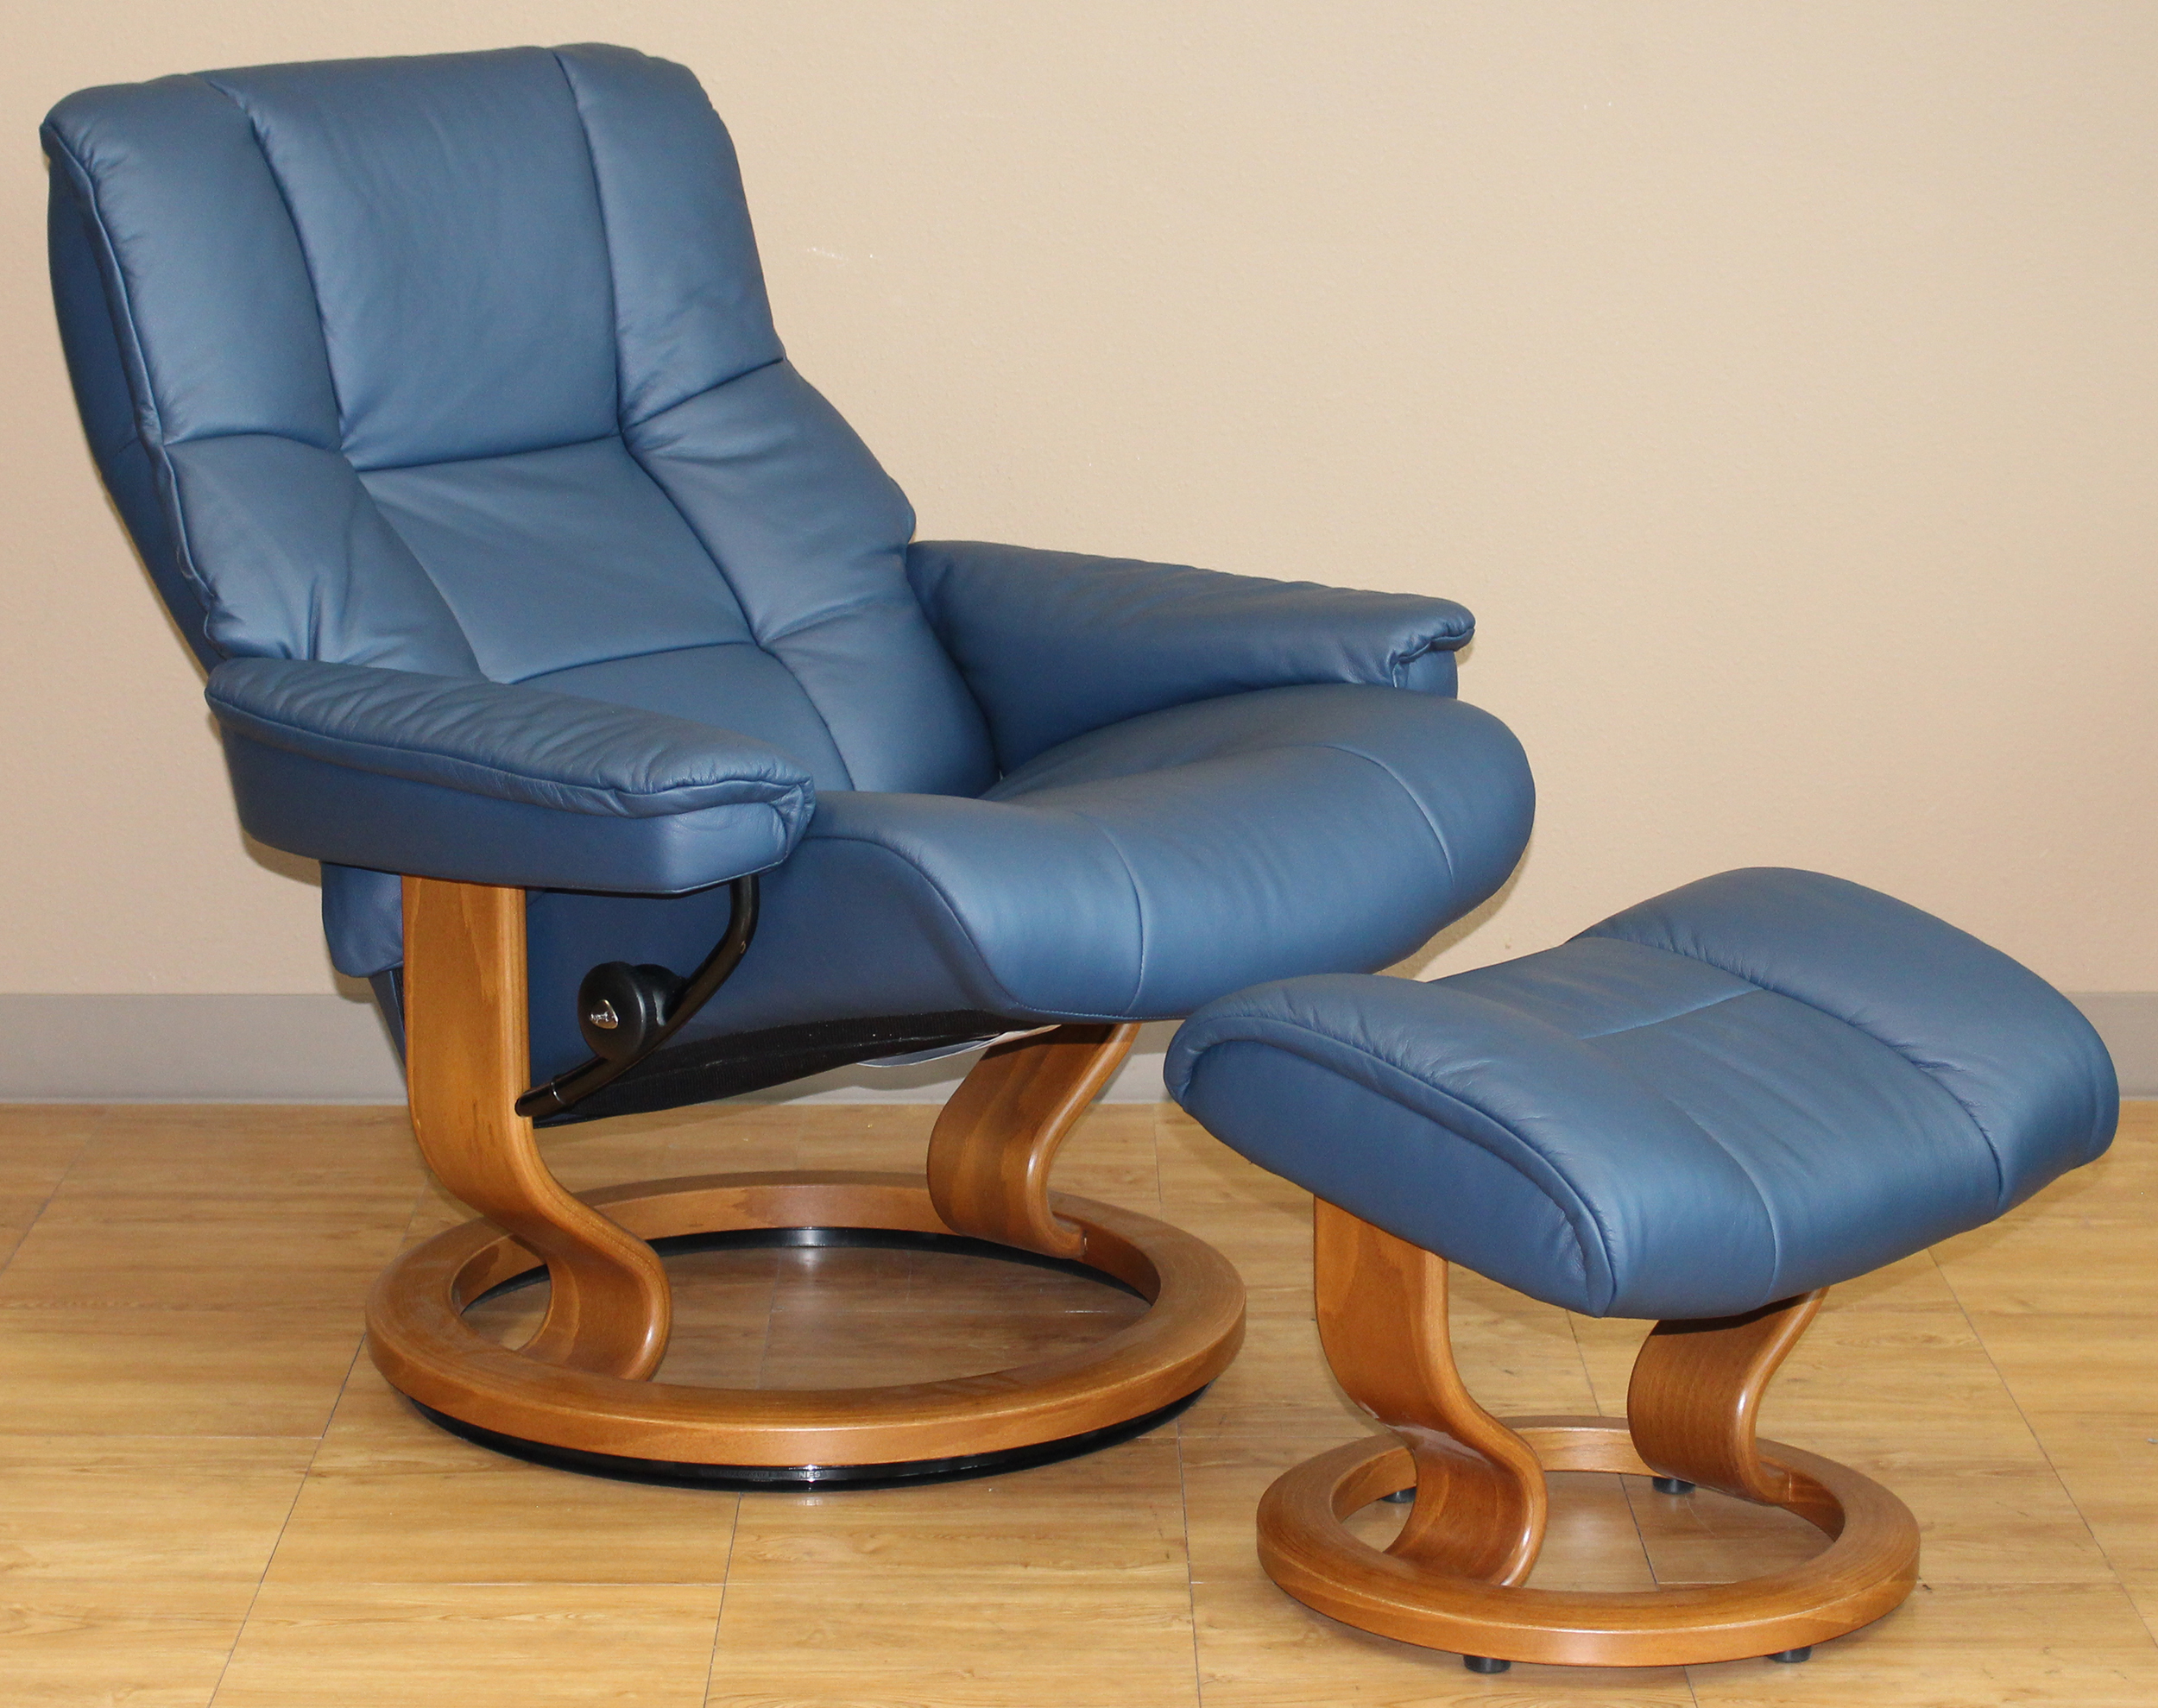 Stressless Kensington Large Mayfair Paloma Oxford Blue